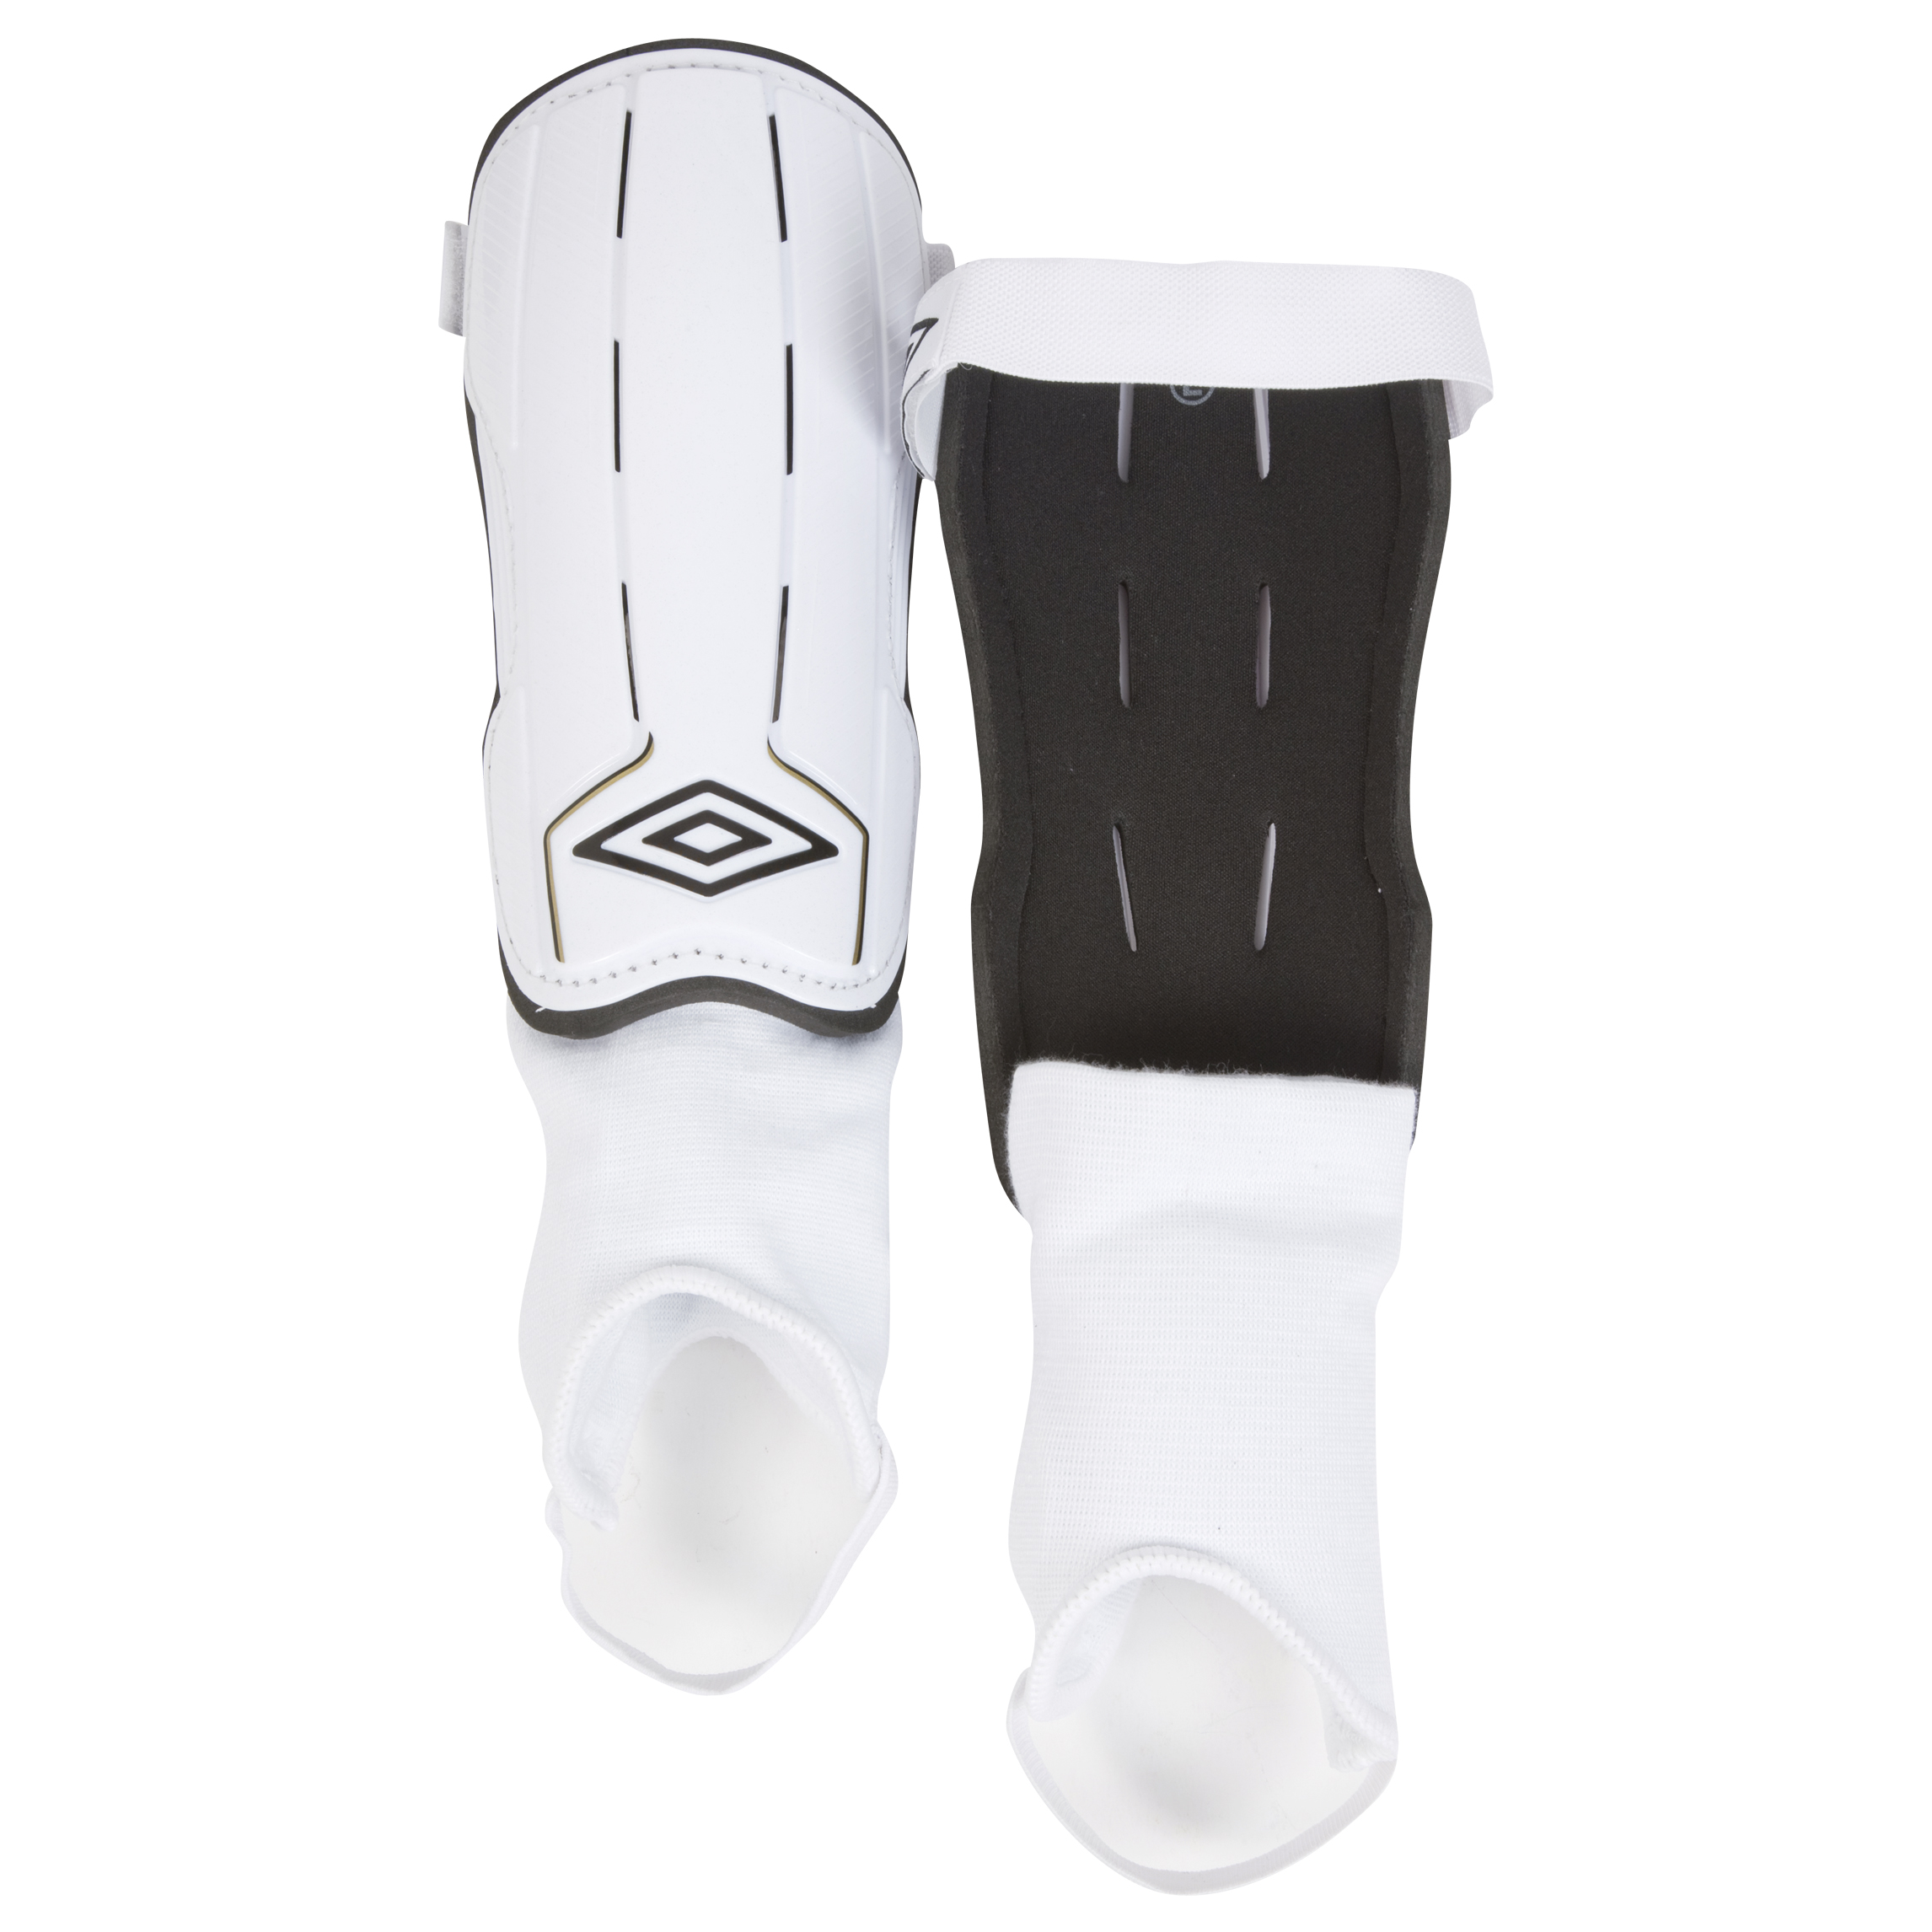 Umbro Speciali Trophy Shin Guard